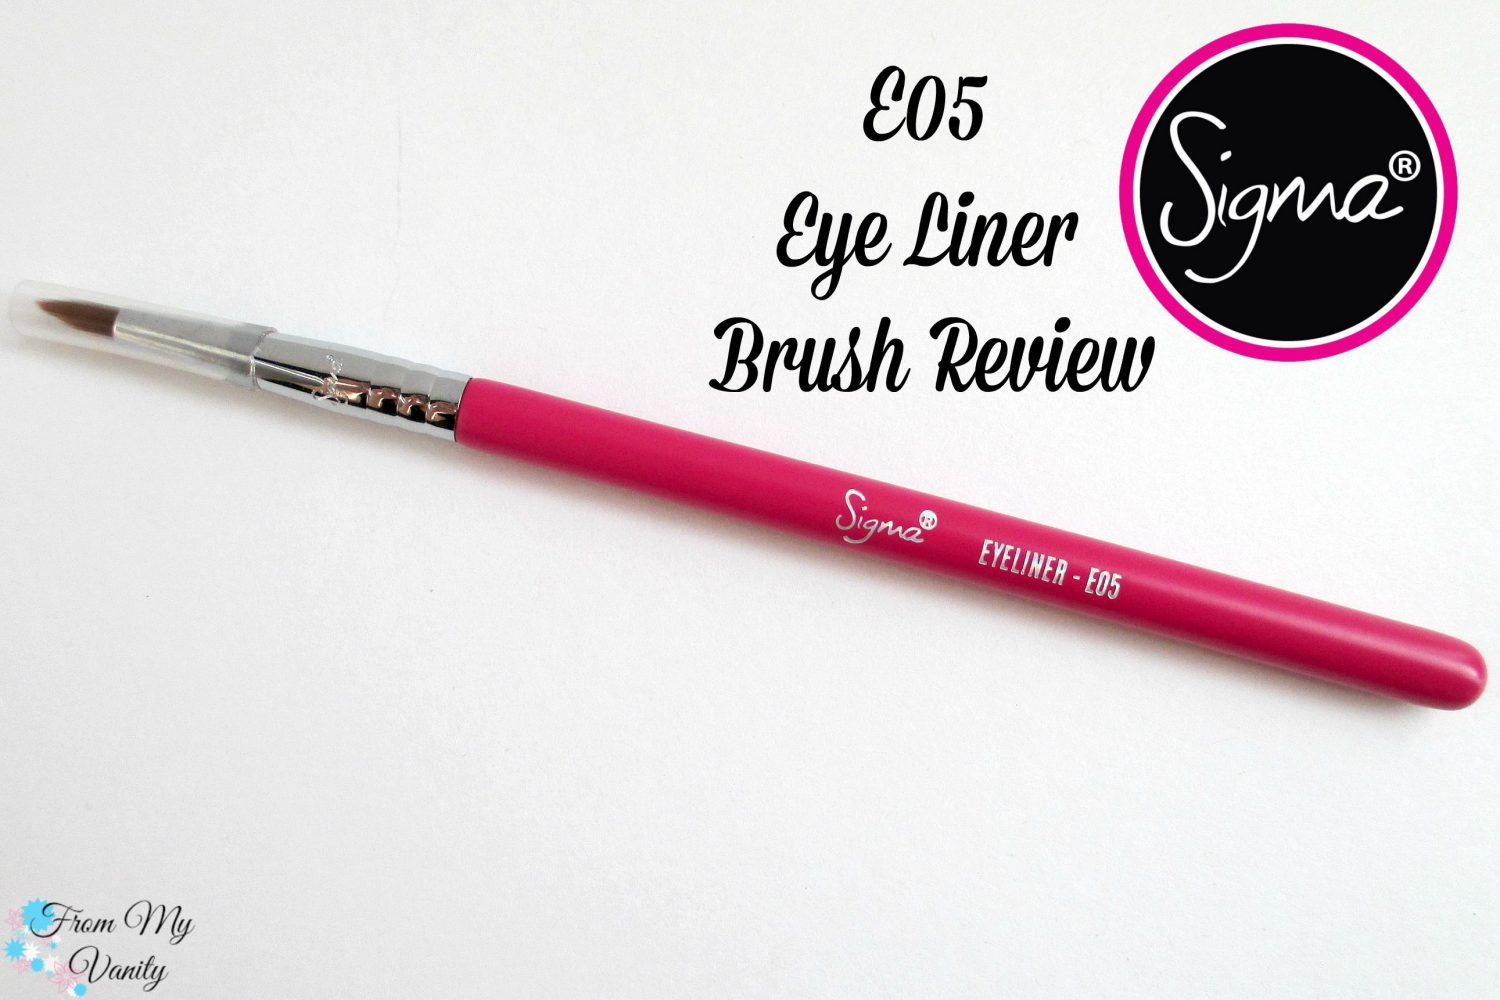 Sigma E05 Eye Liner Brush // From My Vanity